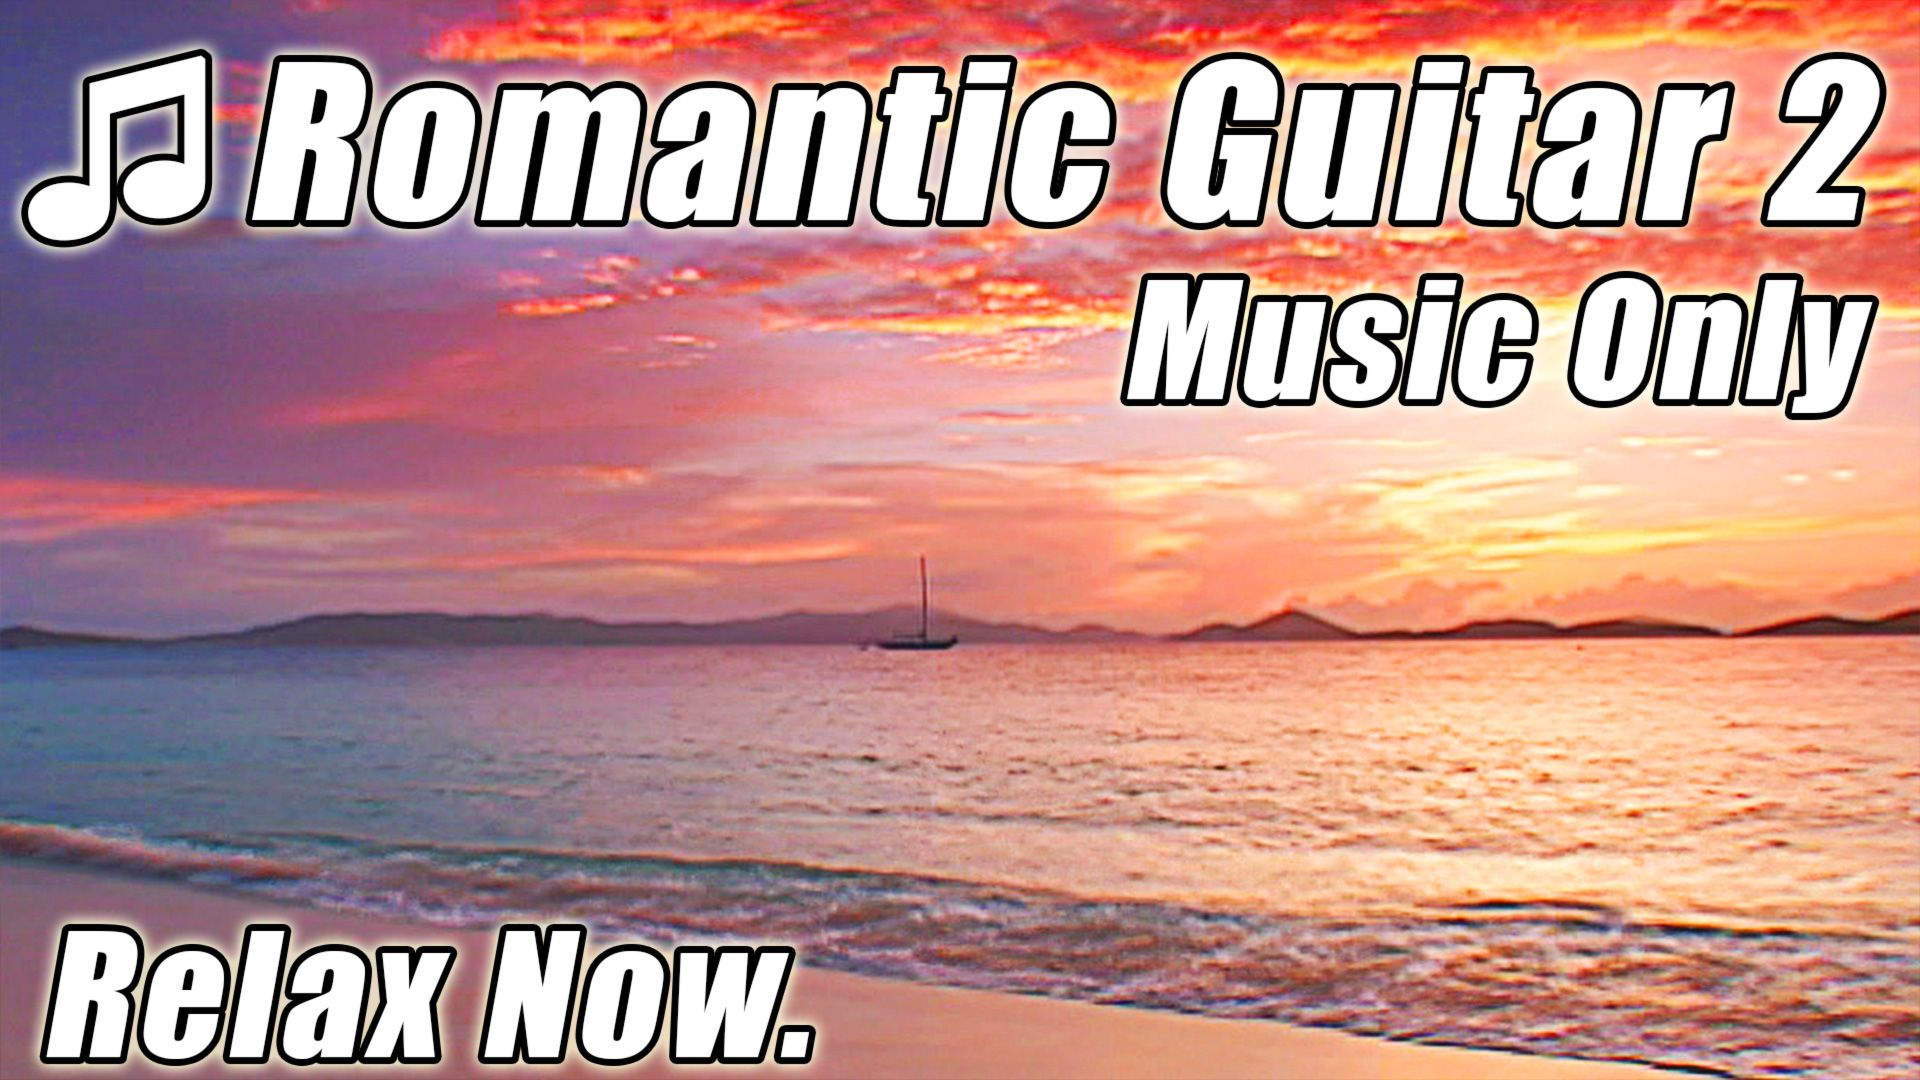 romantic guitar music best relaxing slow spanish love wavesdvdcom relaxation videos. Black Bedroom Furniture Sets. Home Design Ideas